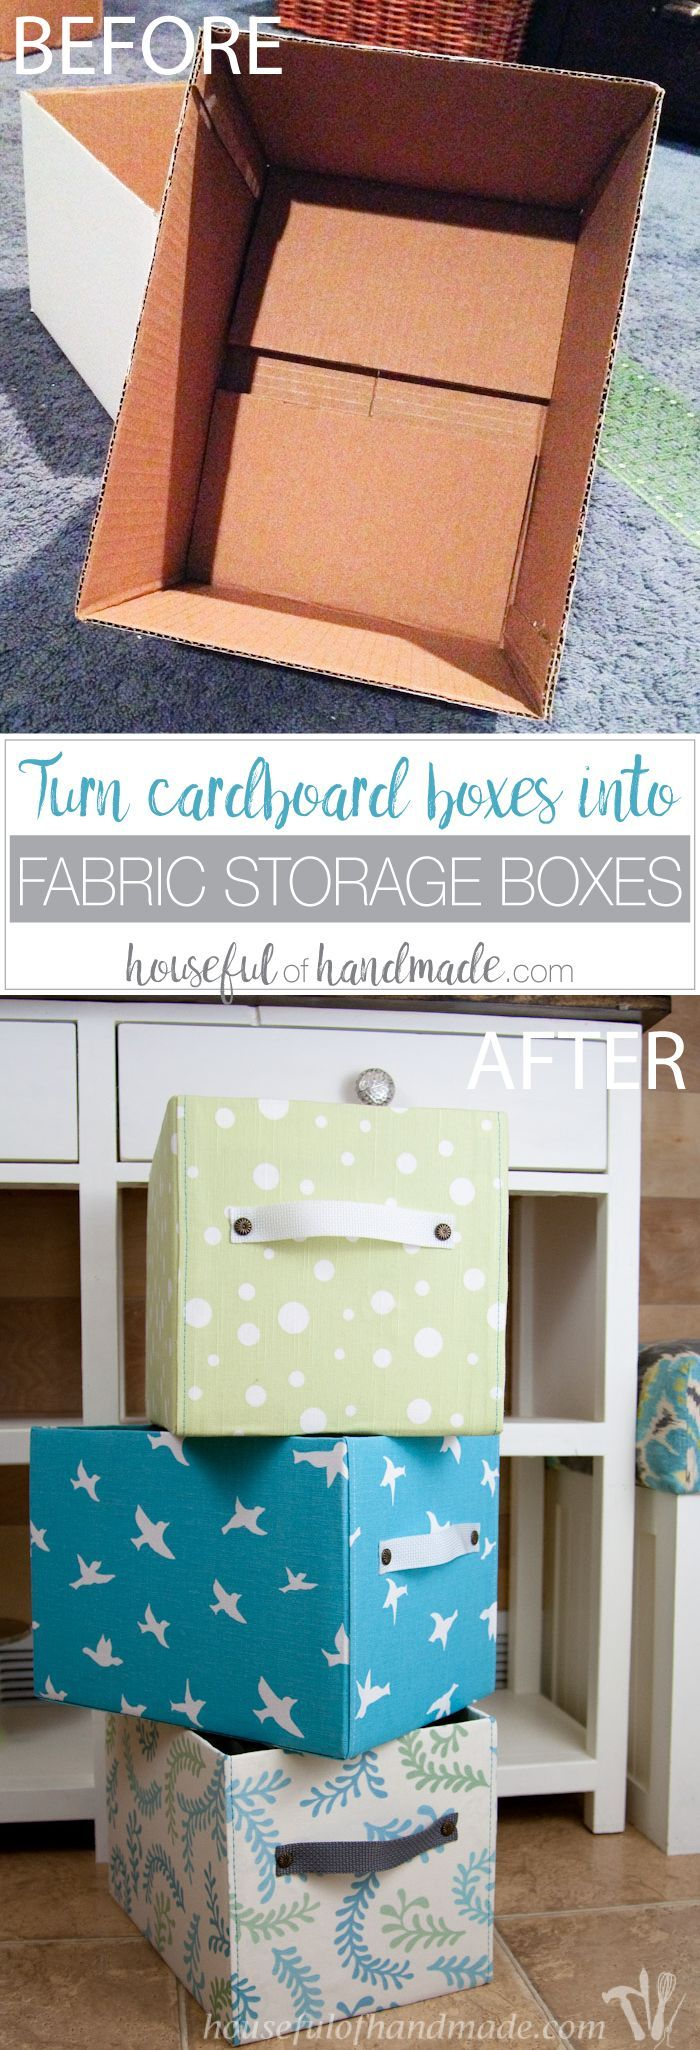 Easy DIY Fabric Storage Boxes Fabric storage boxes